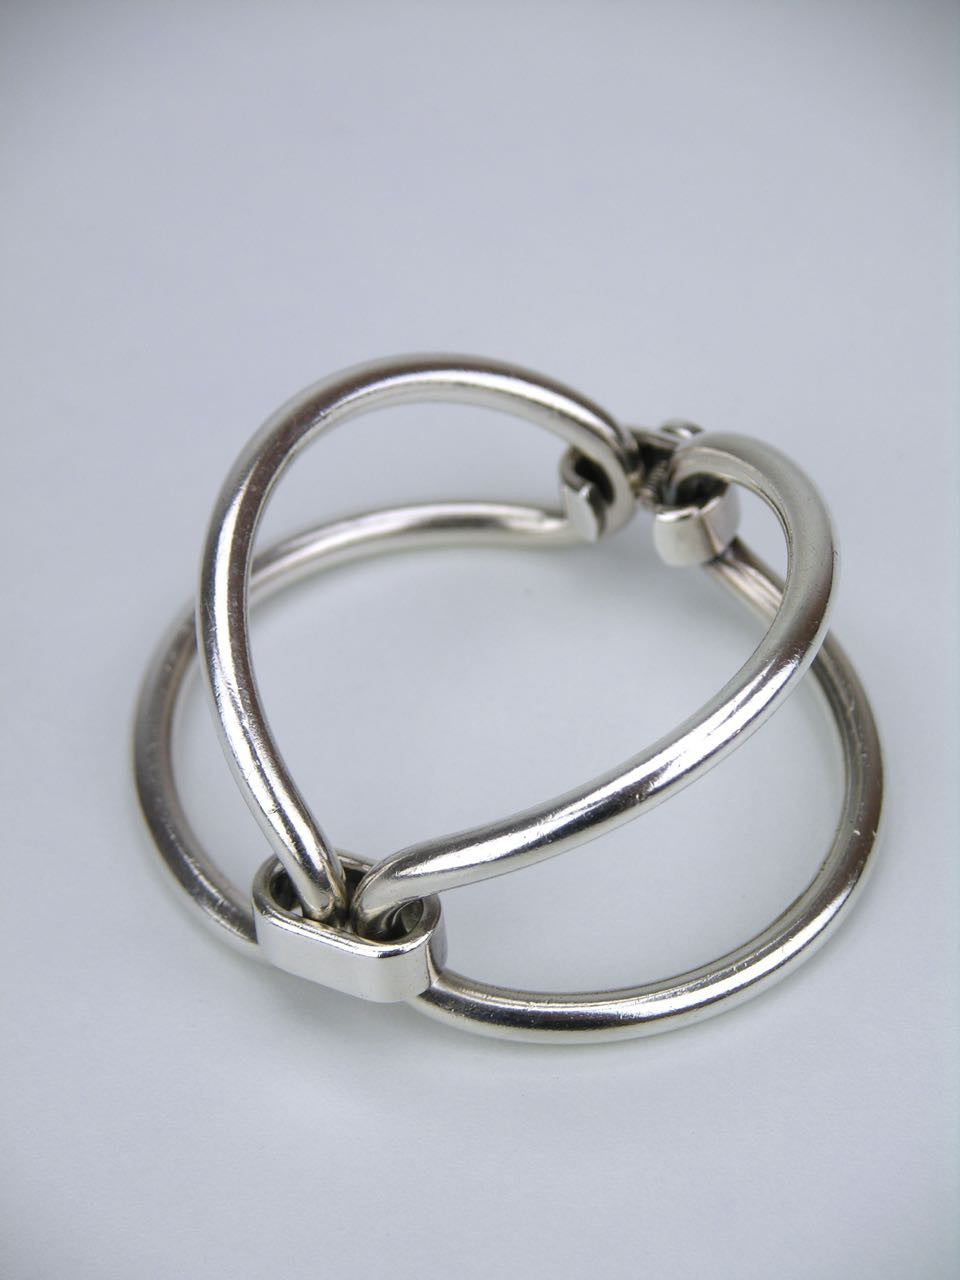 Gucci 1960's double loop bracelet